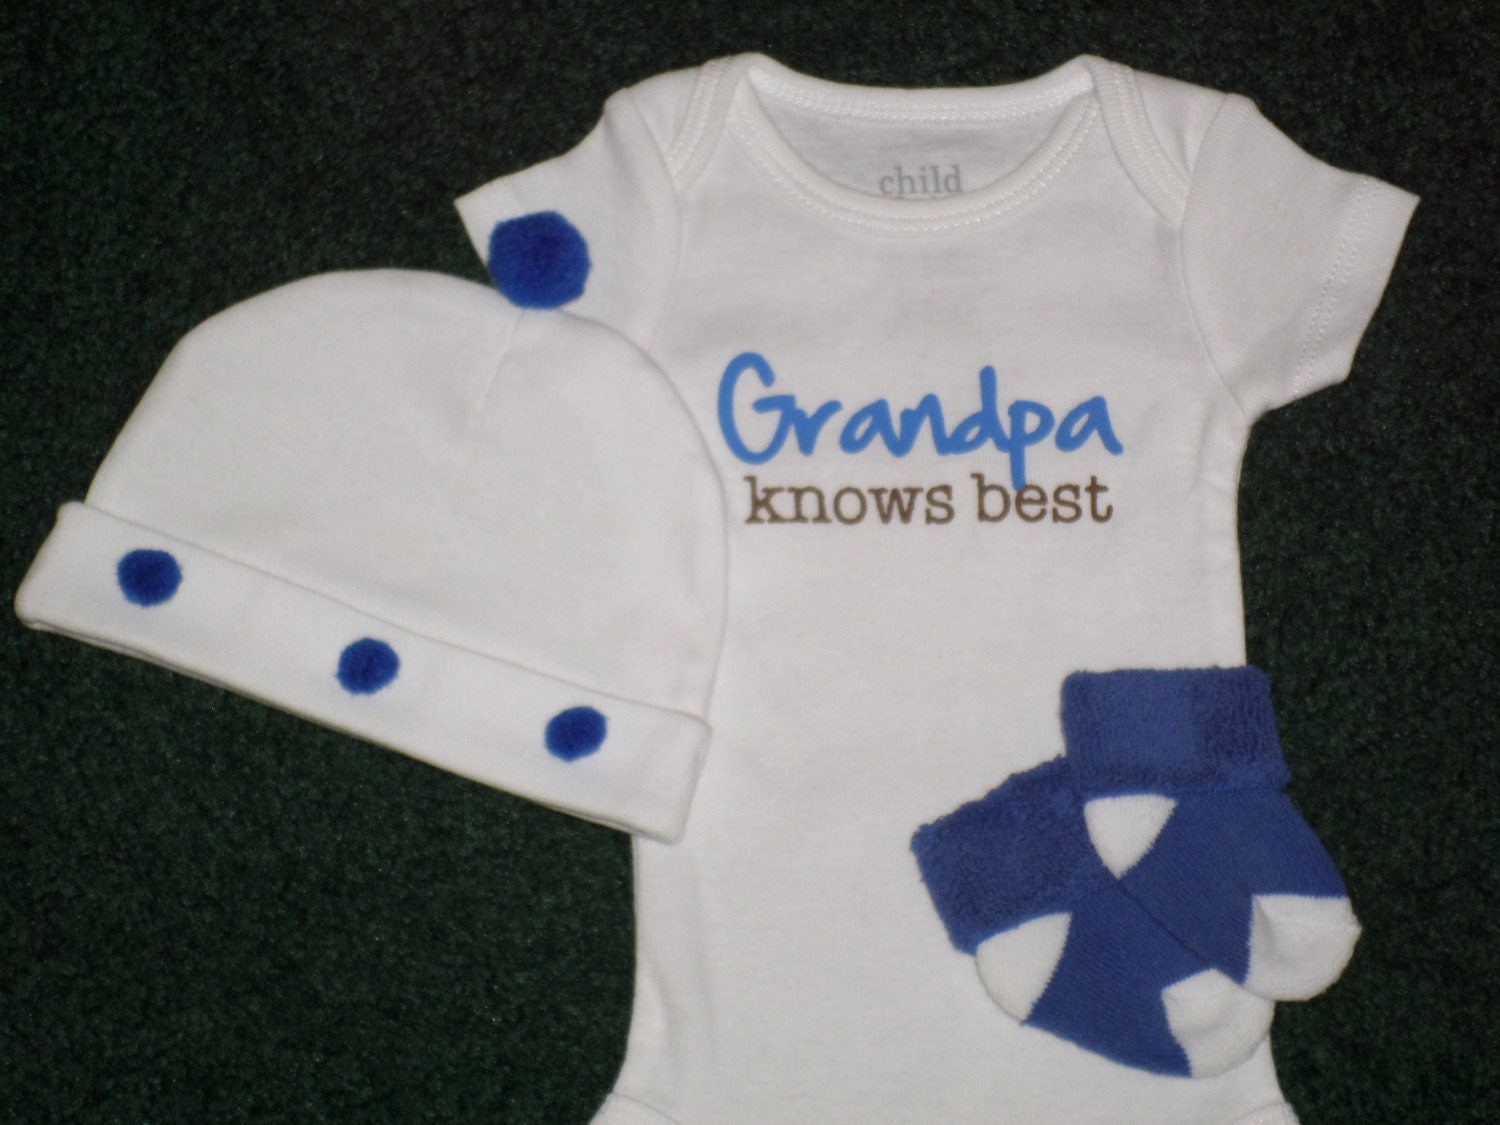 Grandpa Baby Outfit Grandpa Baby Bodysuit Grandpa Baby: Grandpa Knows Best Newborn Bodysuit Gift Set For Baby Boy